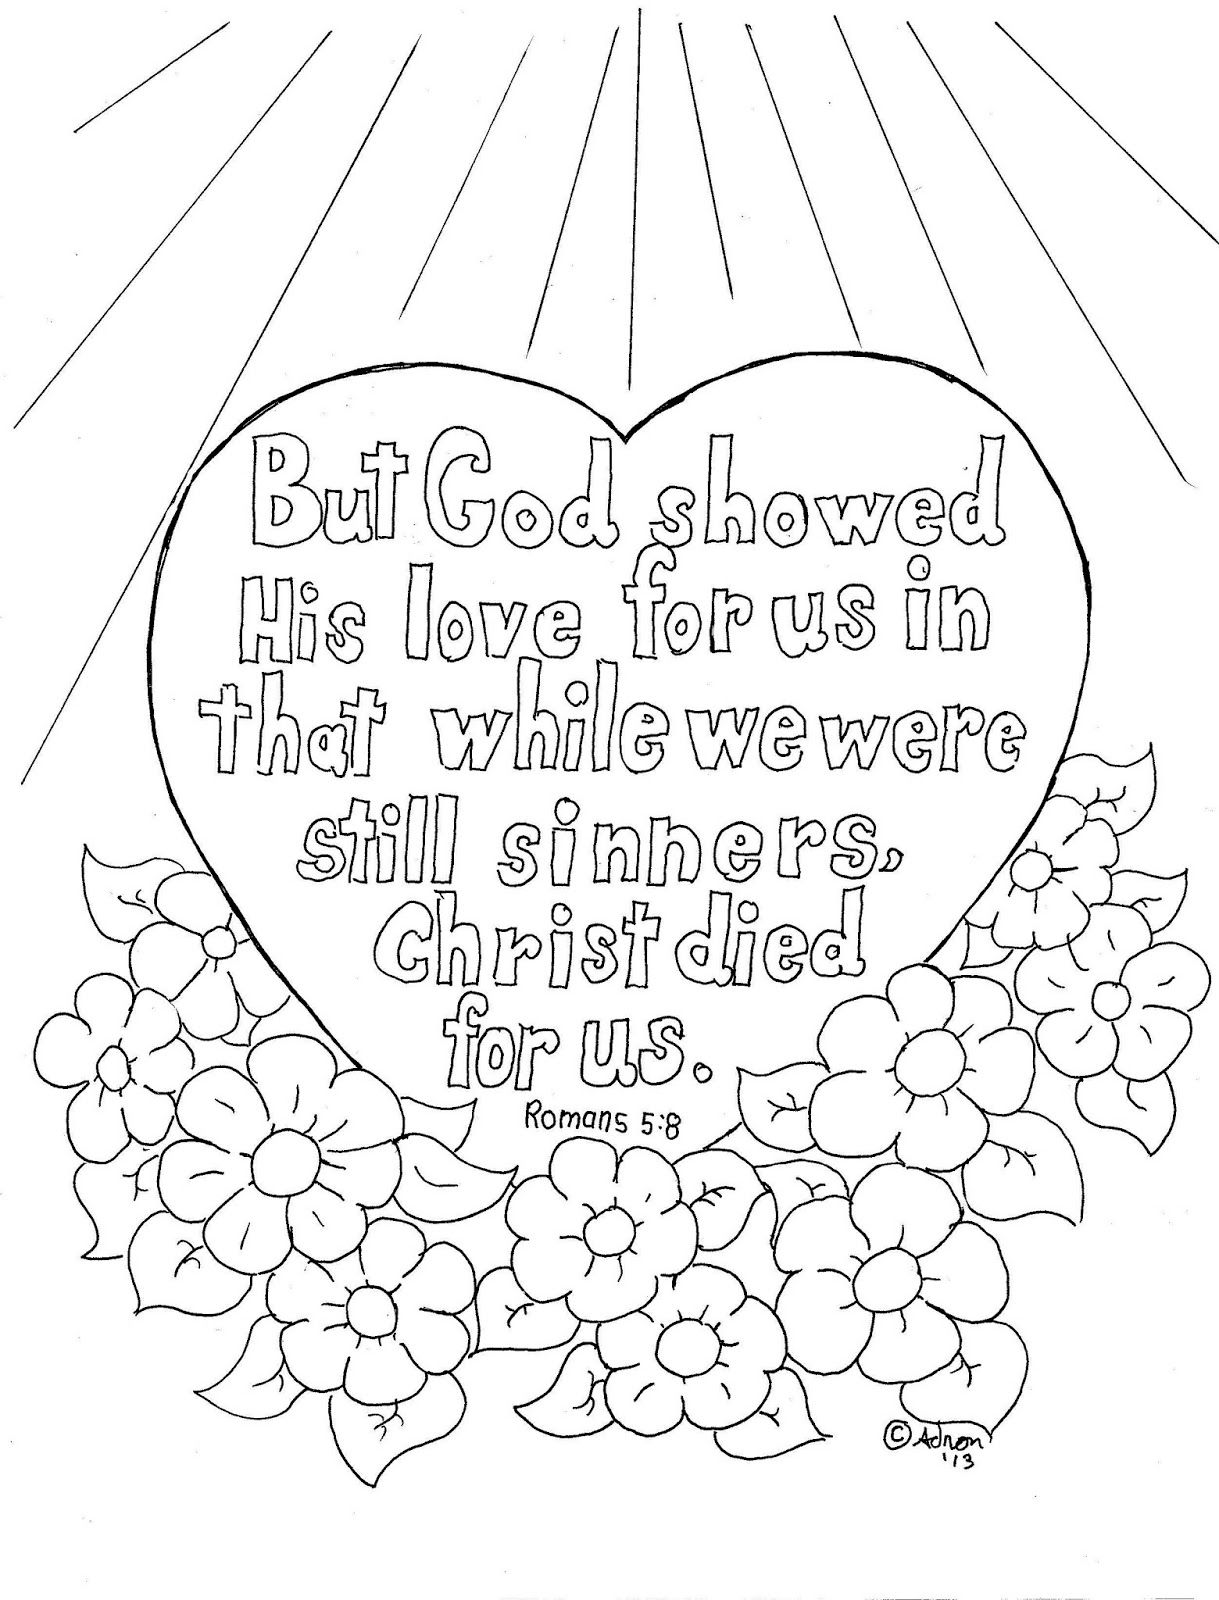 Coloring Pages For Kids By Mr Adron Romans 5 8 Coloring Page For Kids More At My Blog